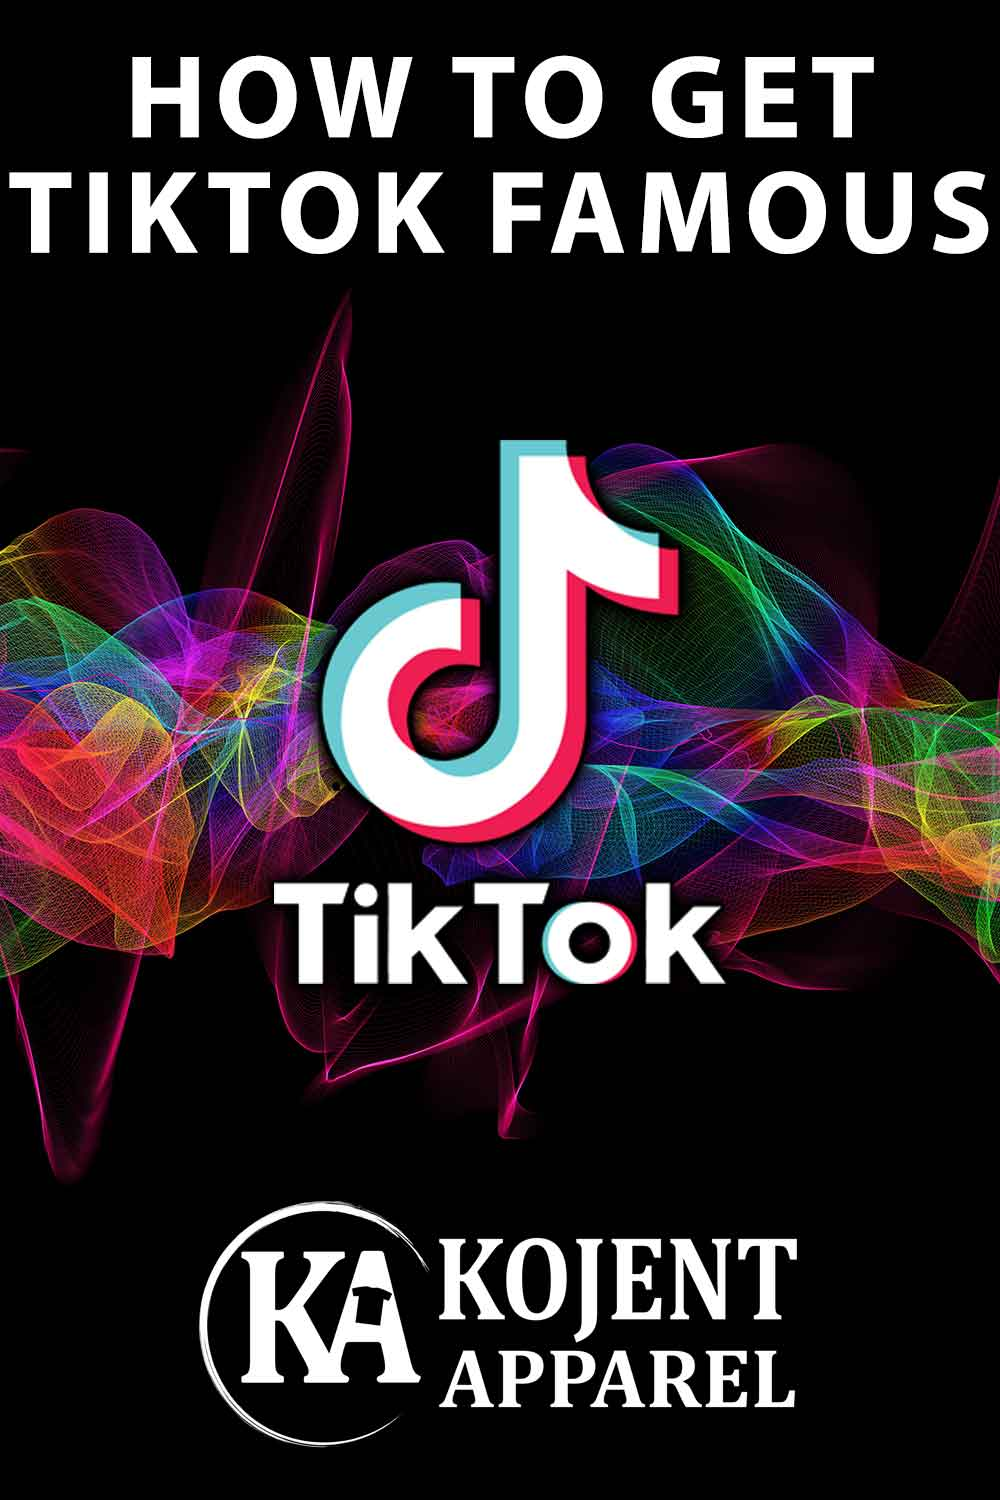 How To Get TikTok Famous - Kojent Apparel